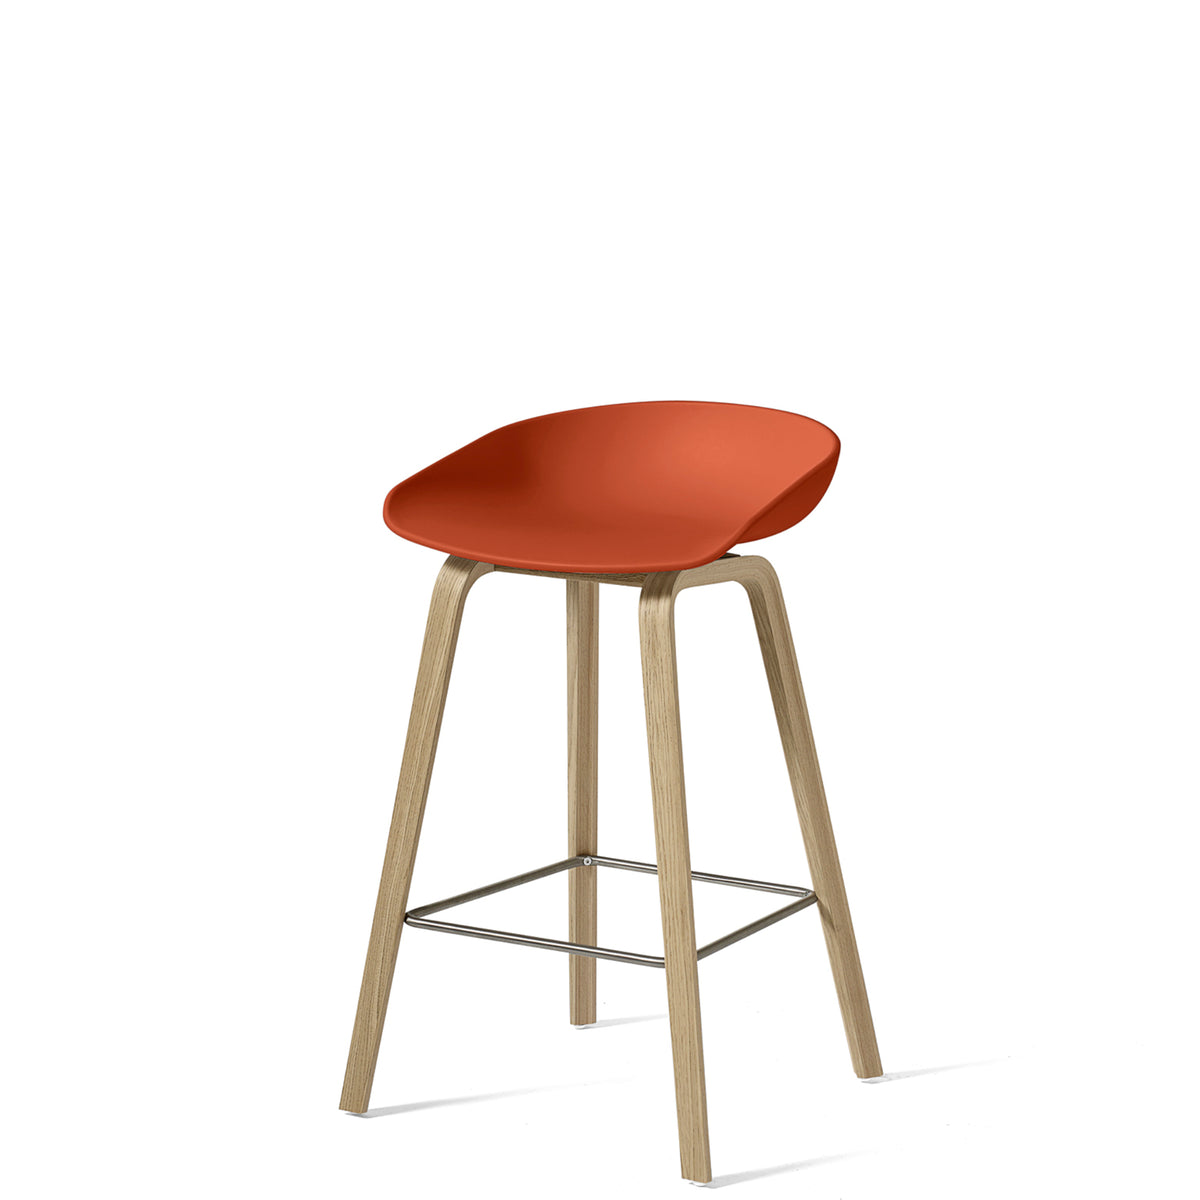 HAY About A Stool AAS32 750mm Orange with Matt Lacquered Oak Base